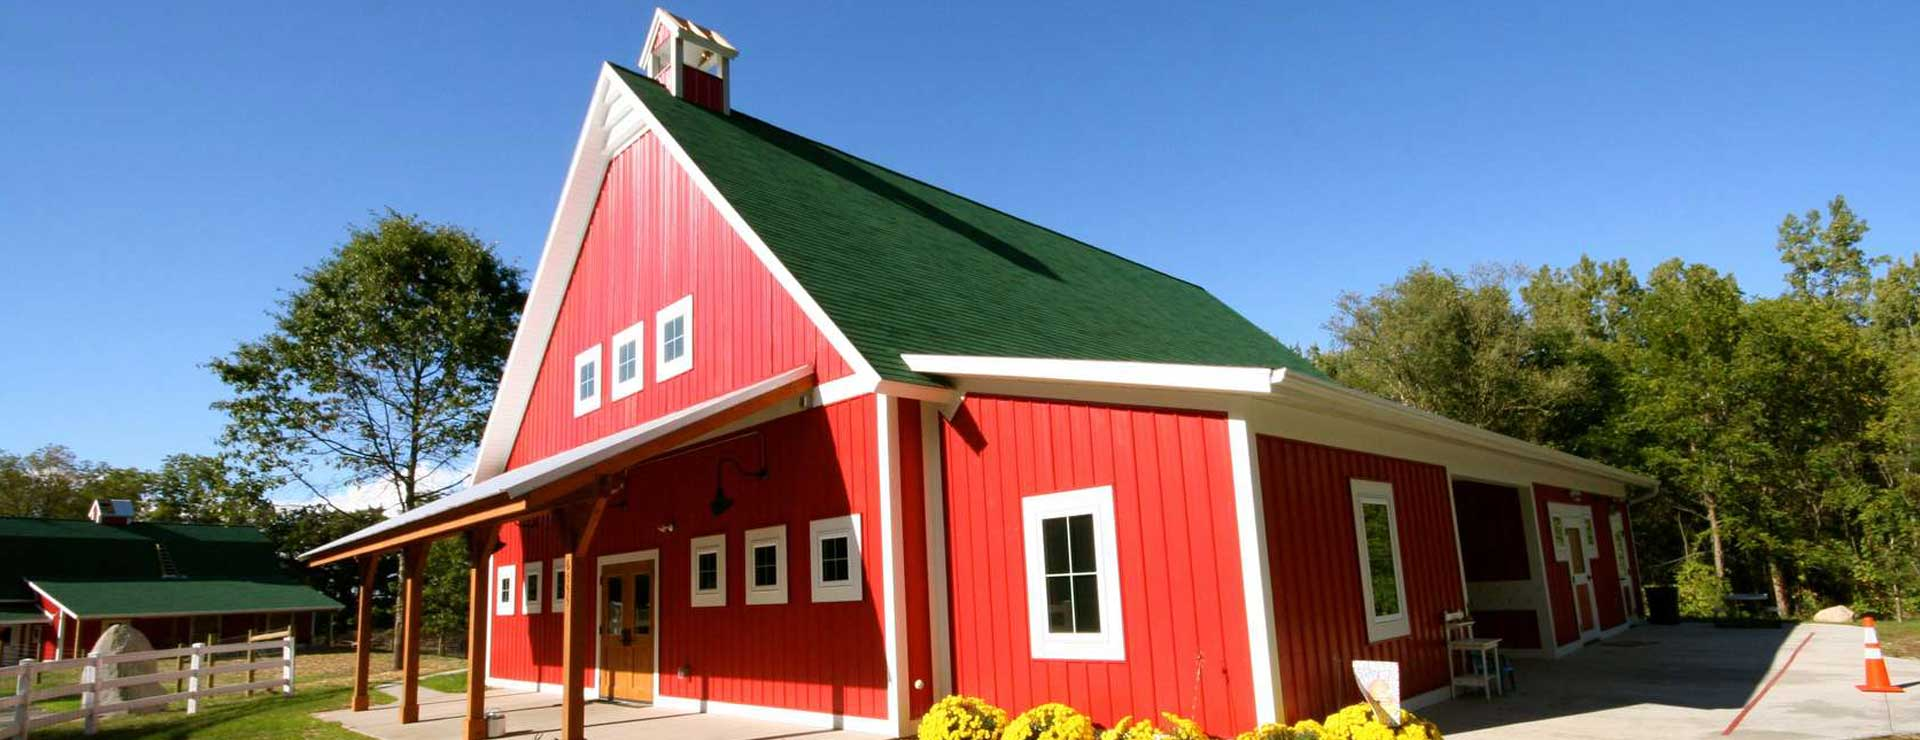 canterbury-creek-farm-preschool-grand-rapids-mi-school-barn